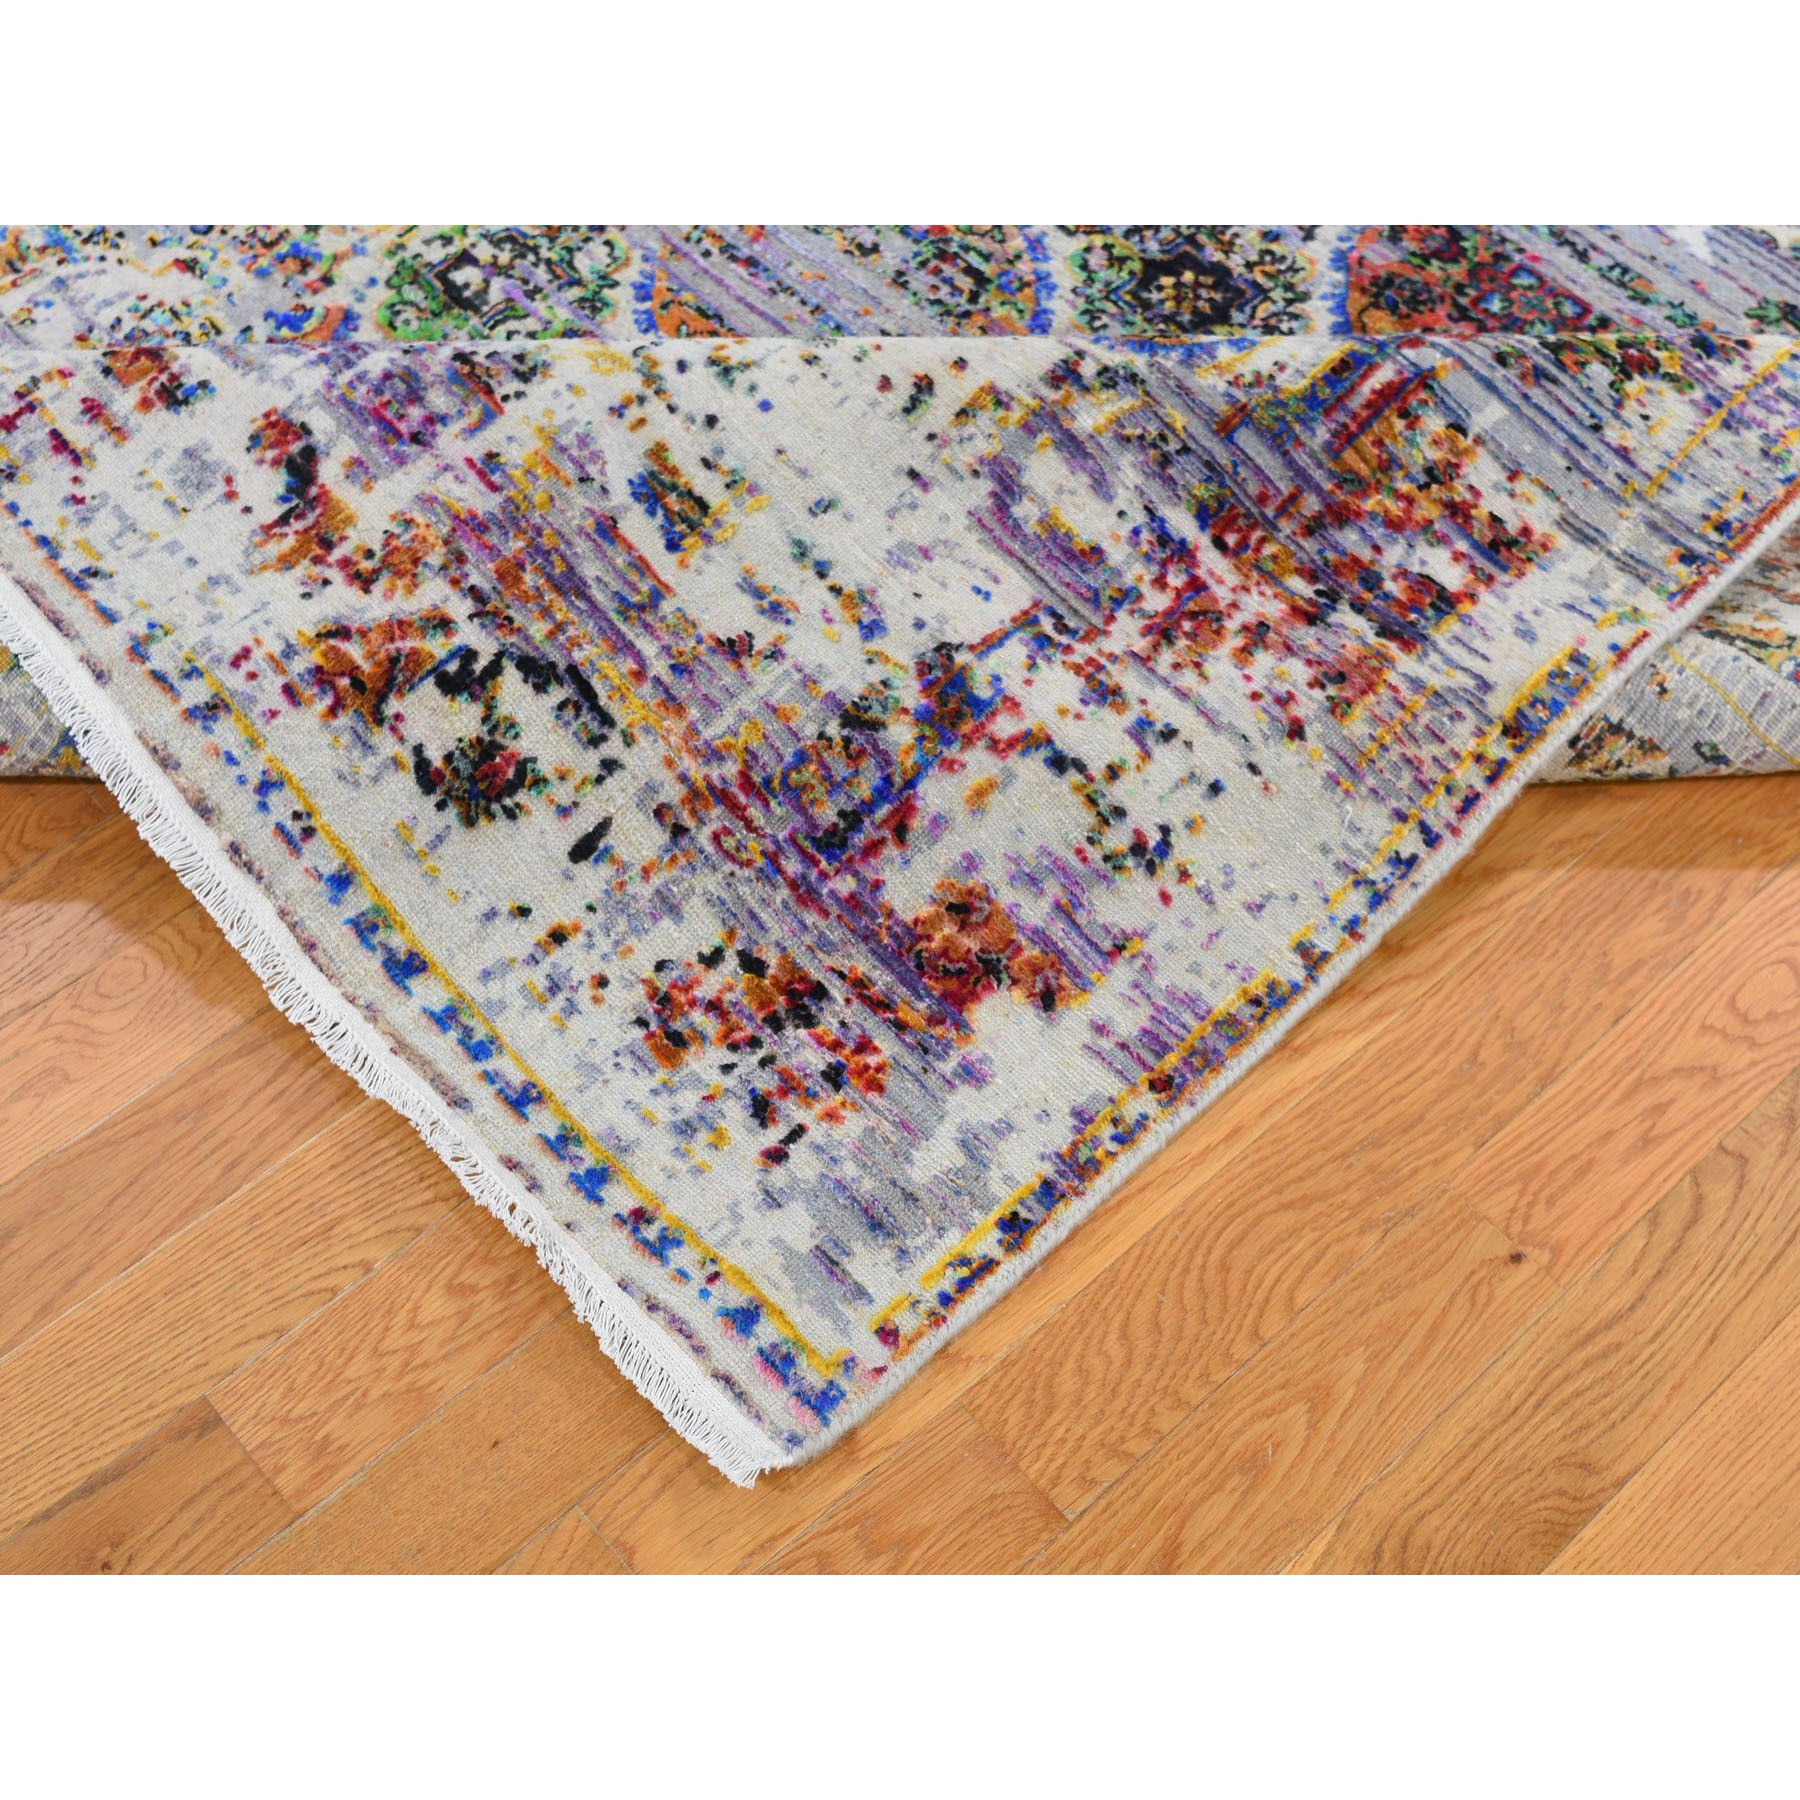 "6'x9'1"" ERASED ROSSETS, Colorful Sari Silk With Textured Wool Hand Woven Oriental Rug"